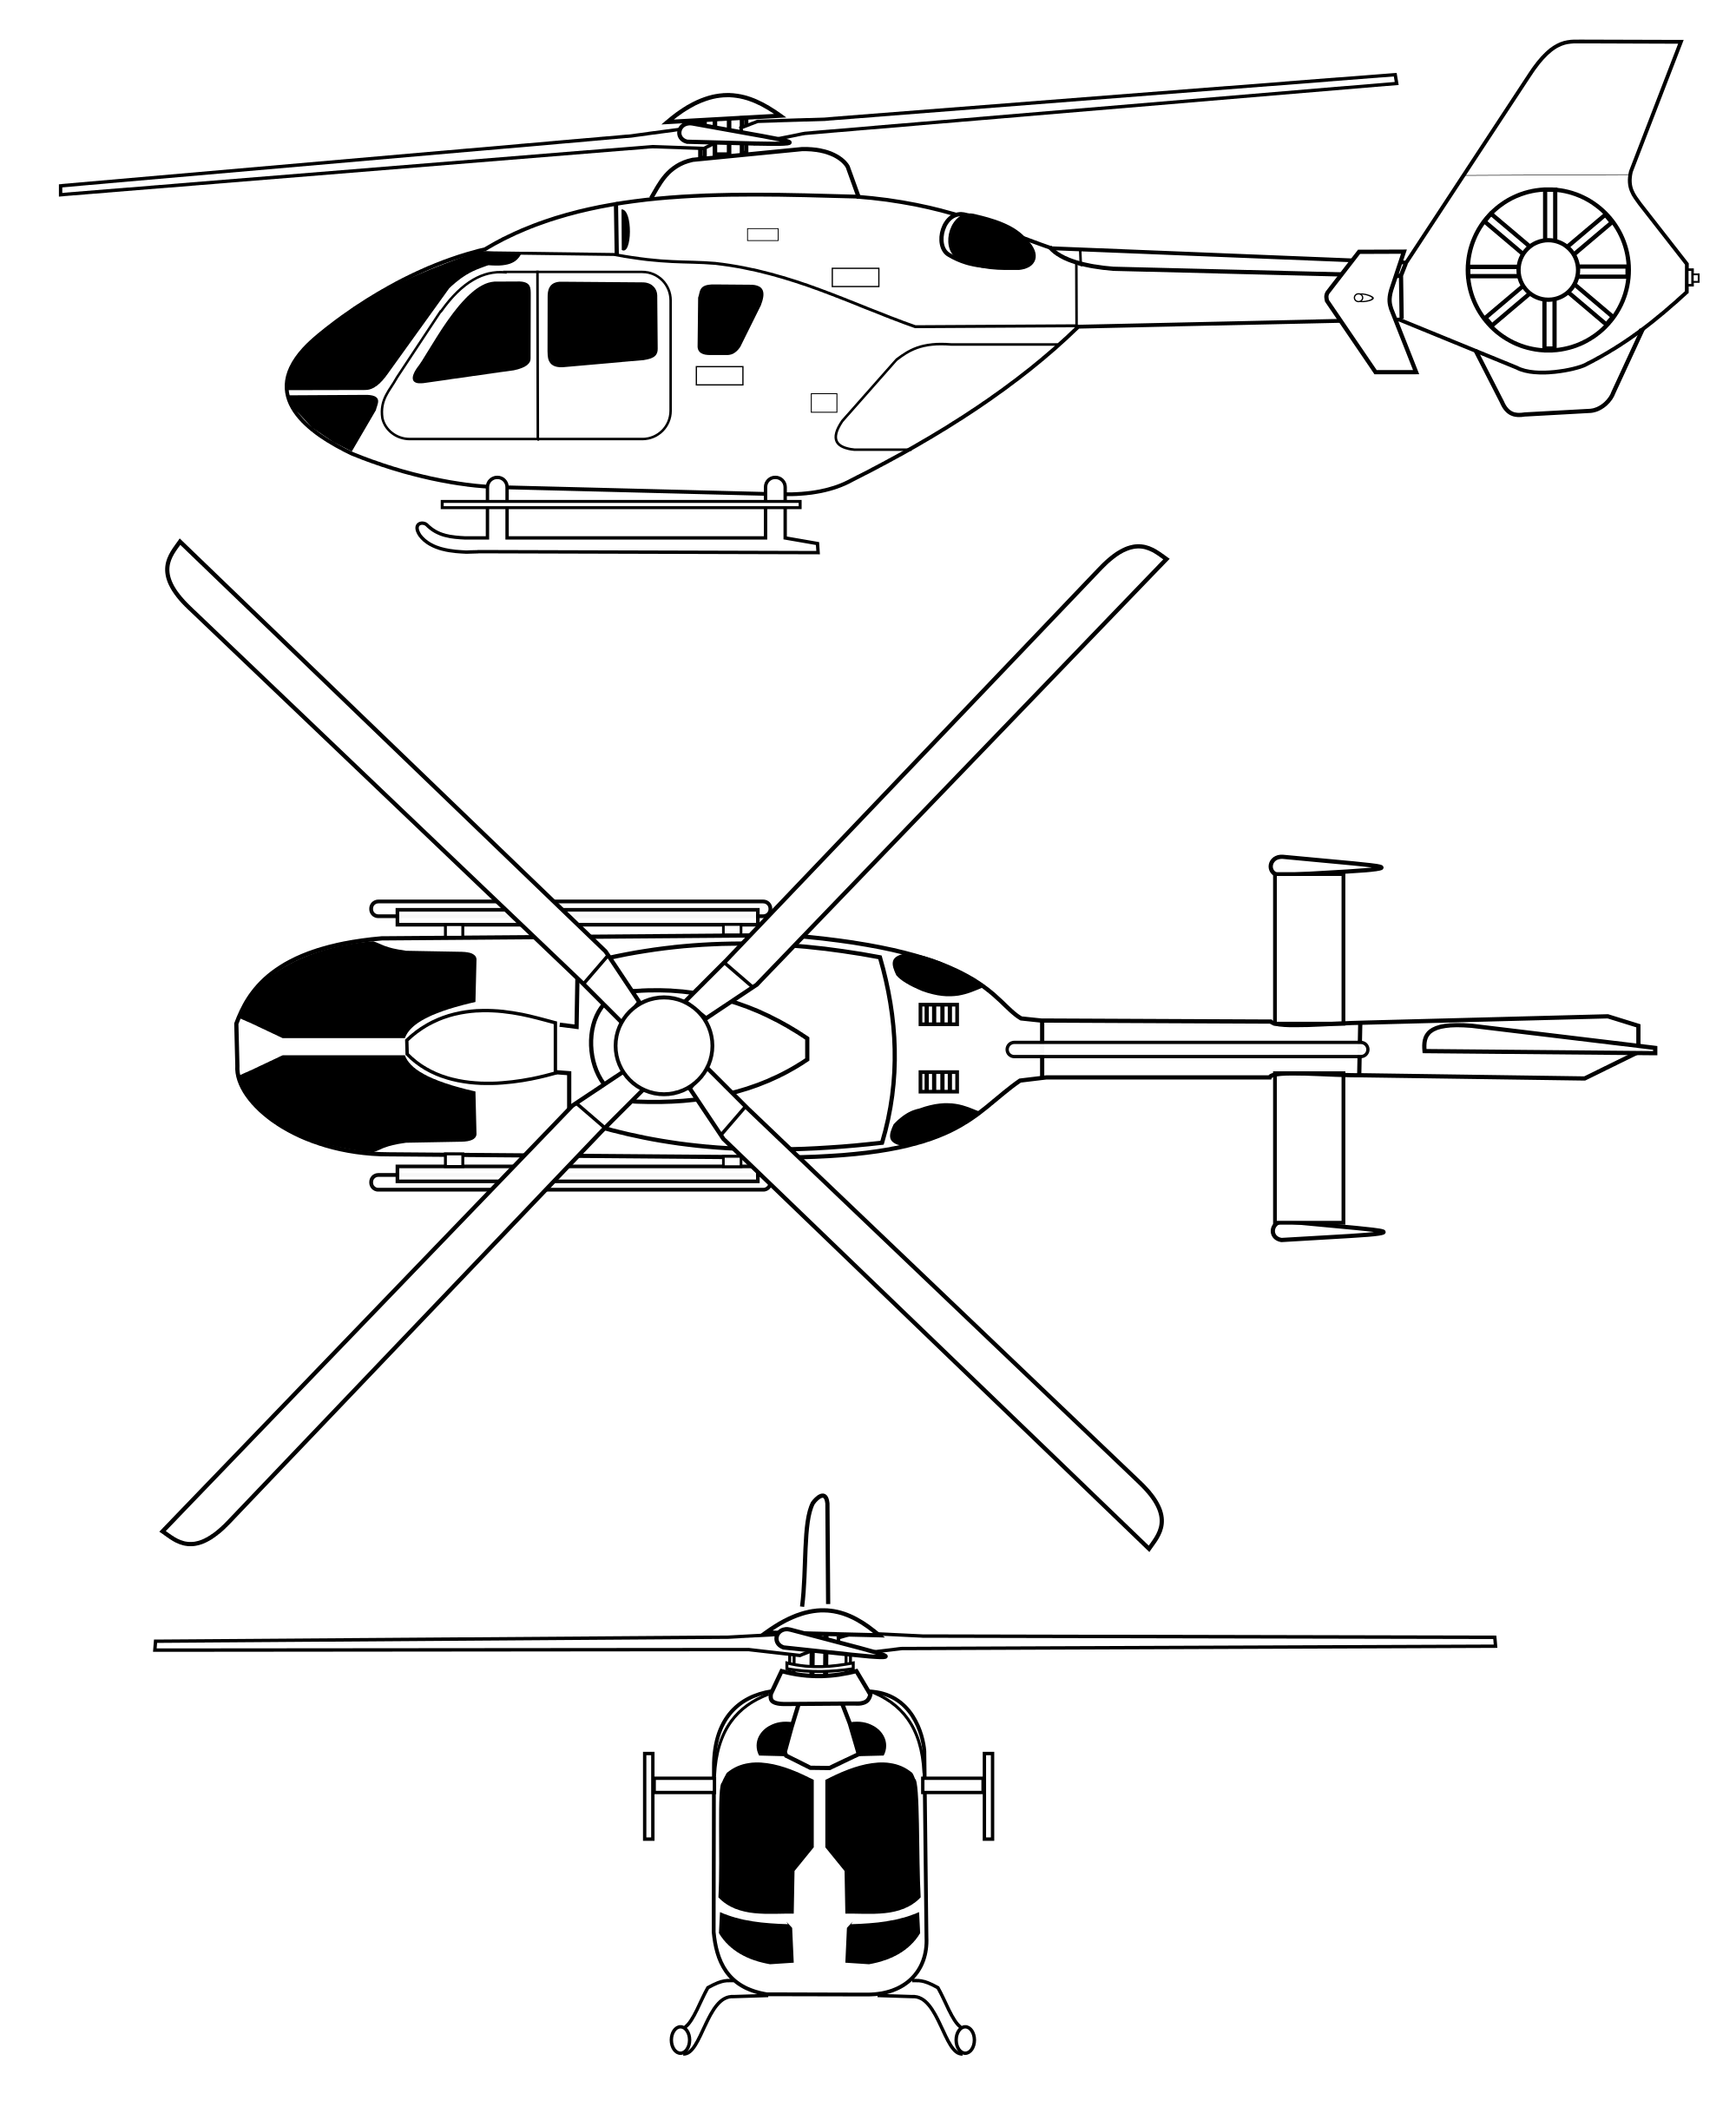 Helicopter clipart svg. File ec orthographical image